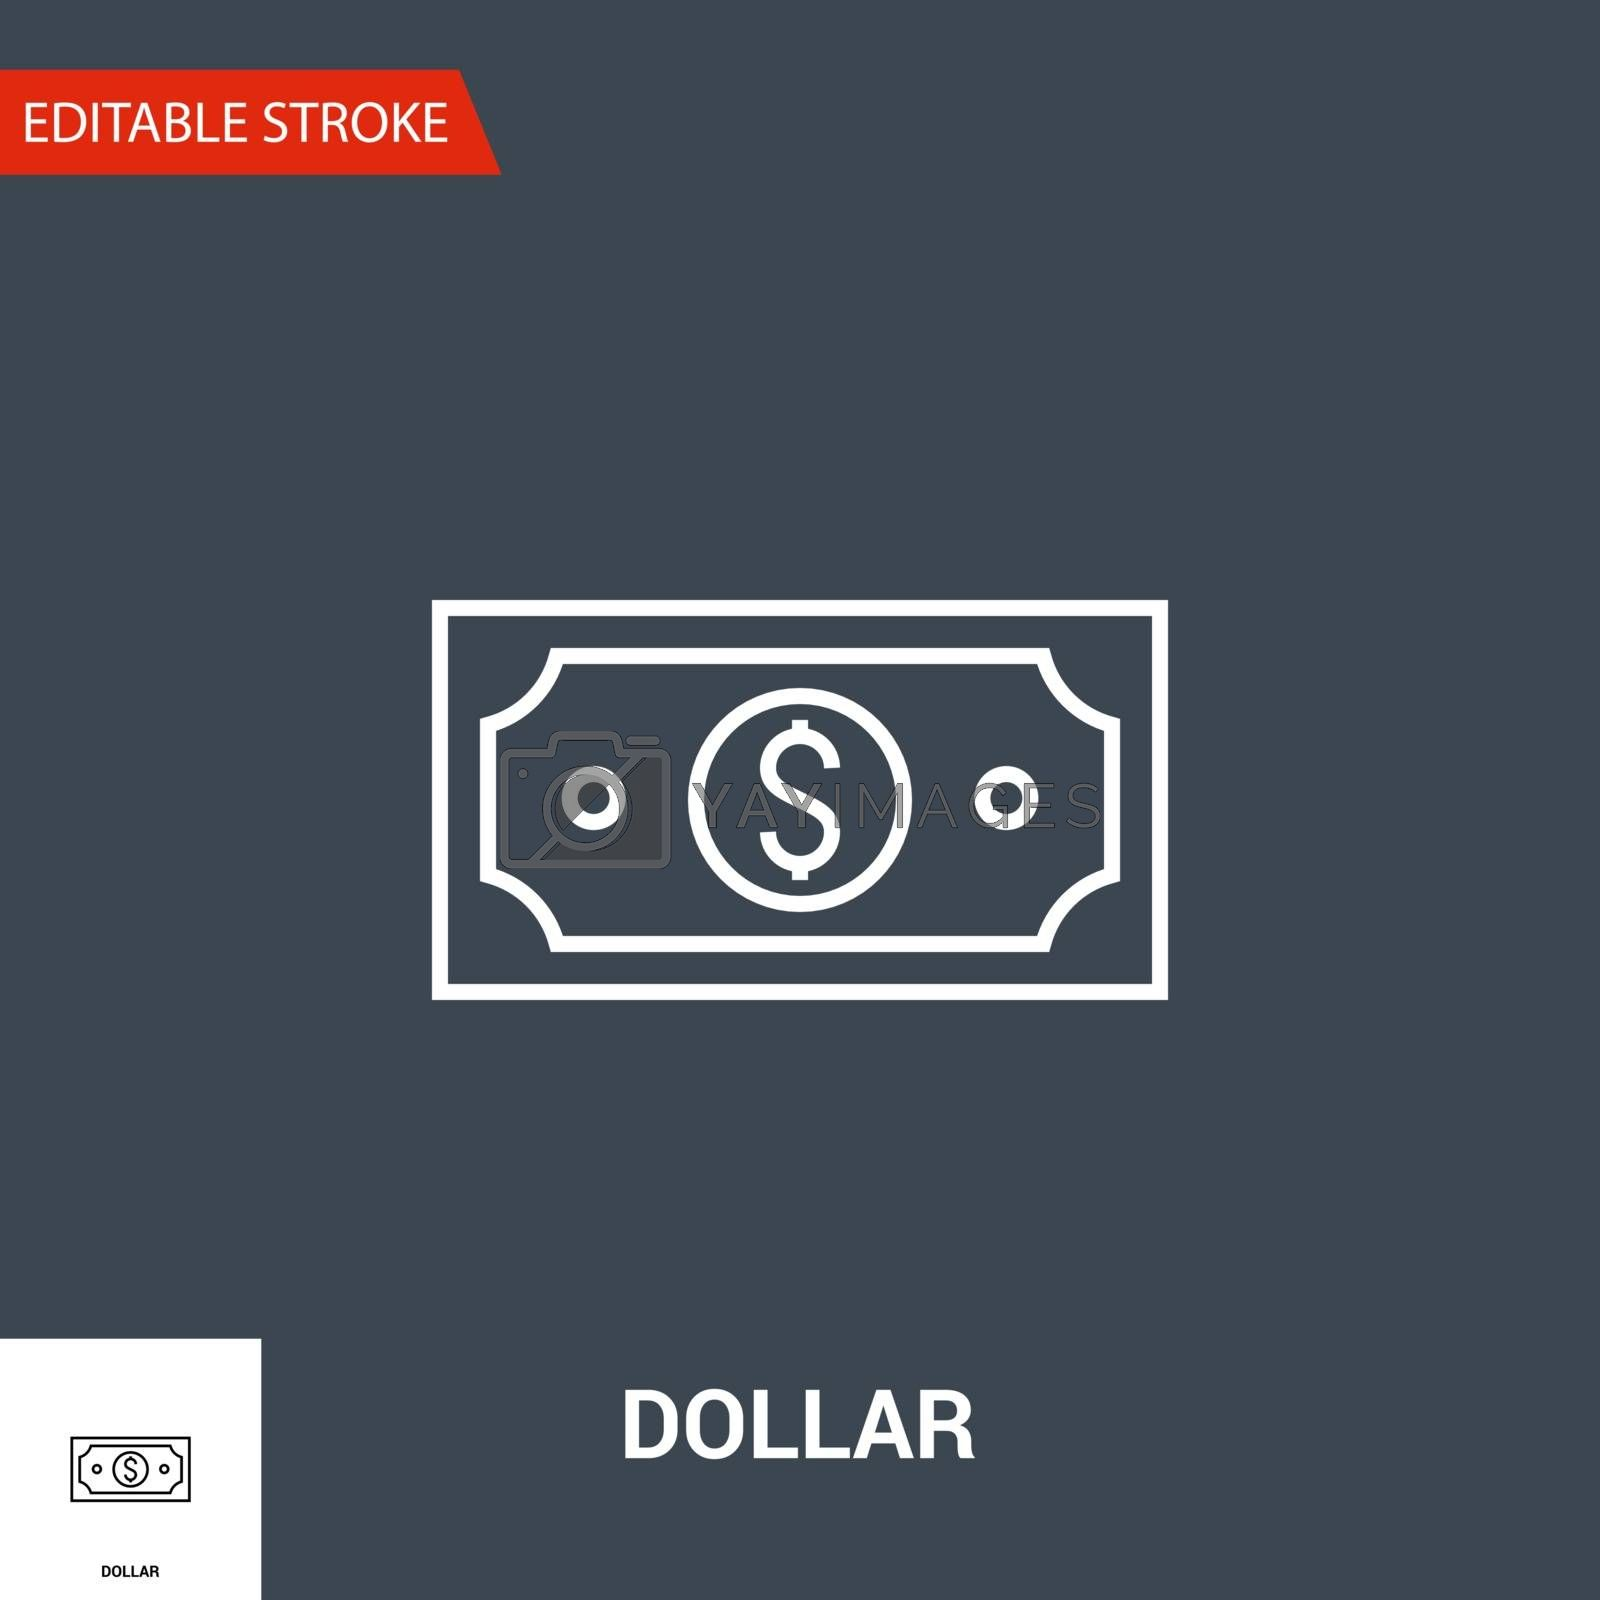 Dollar Icon. Dollar Related Vector Line Icon. Isolated on Black Background. Editable Stroke.